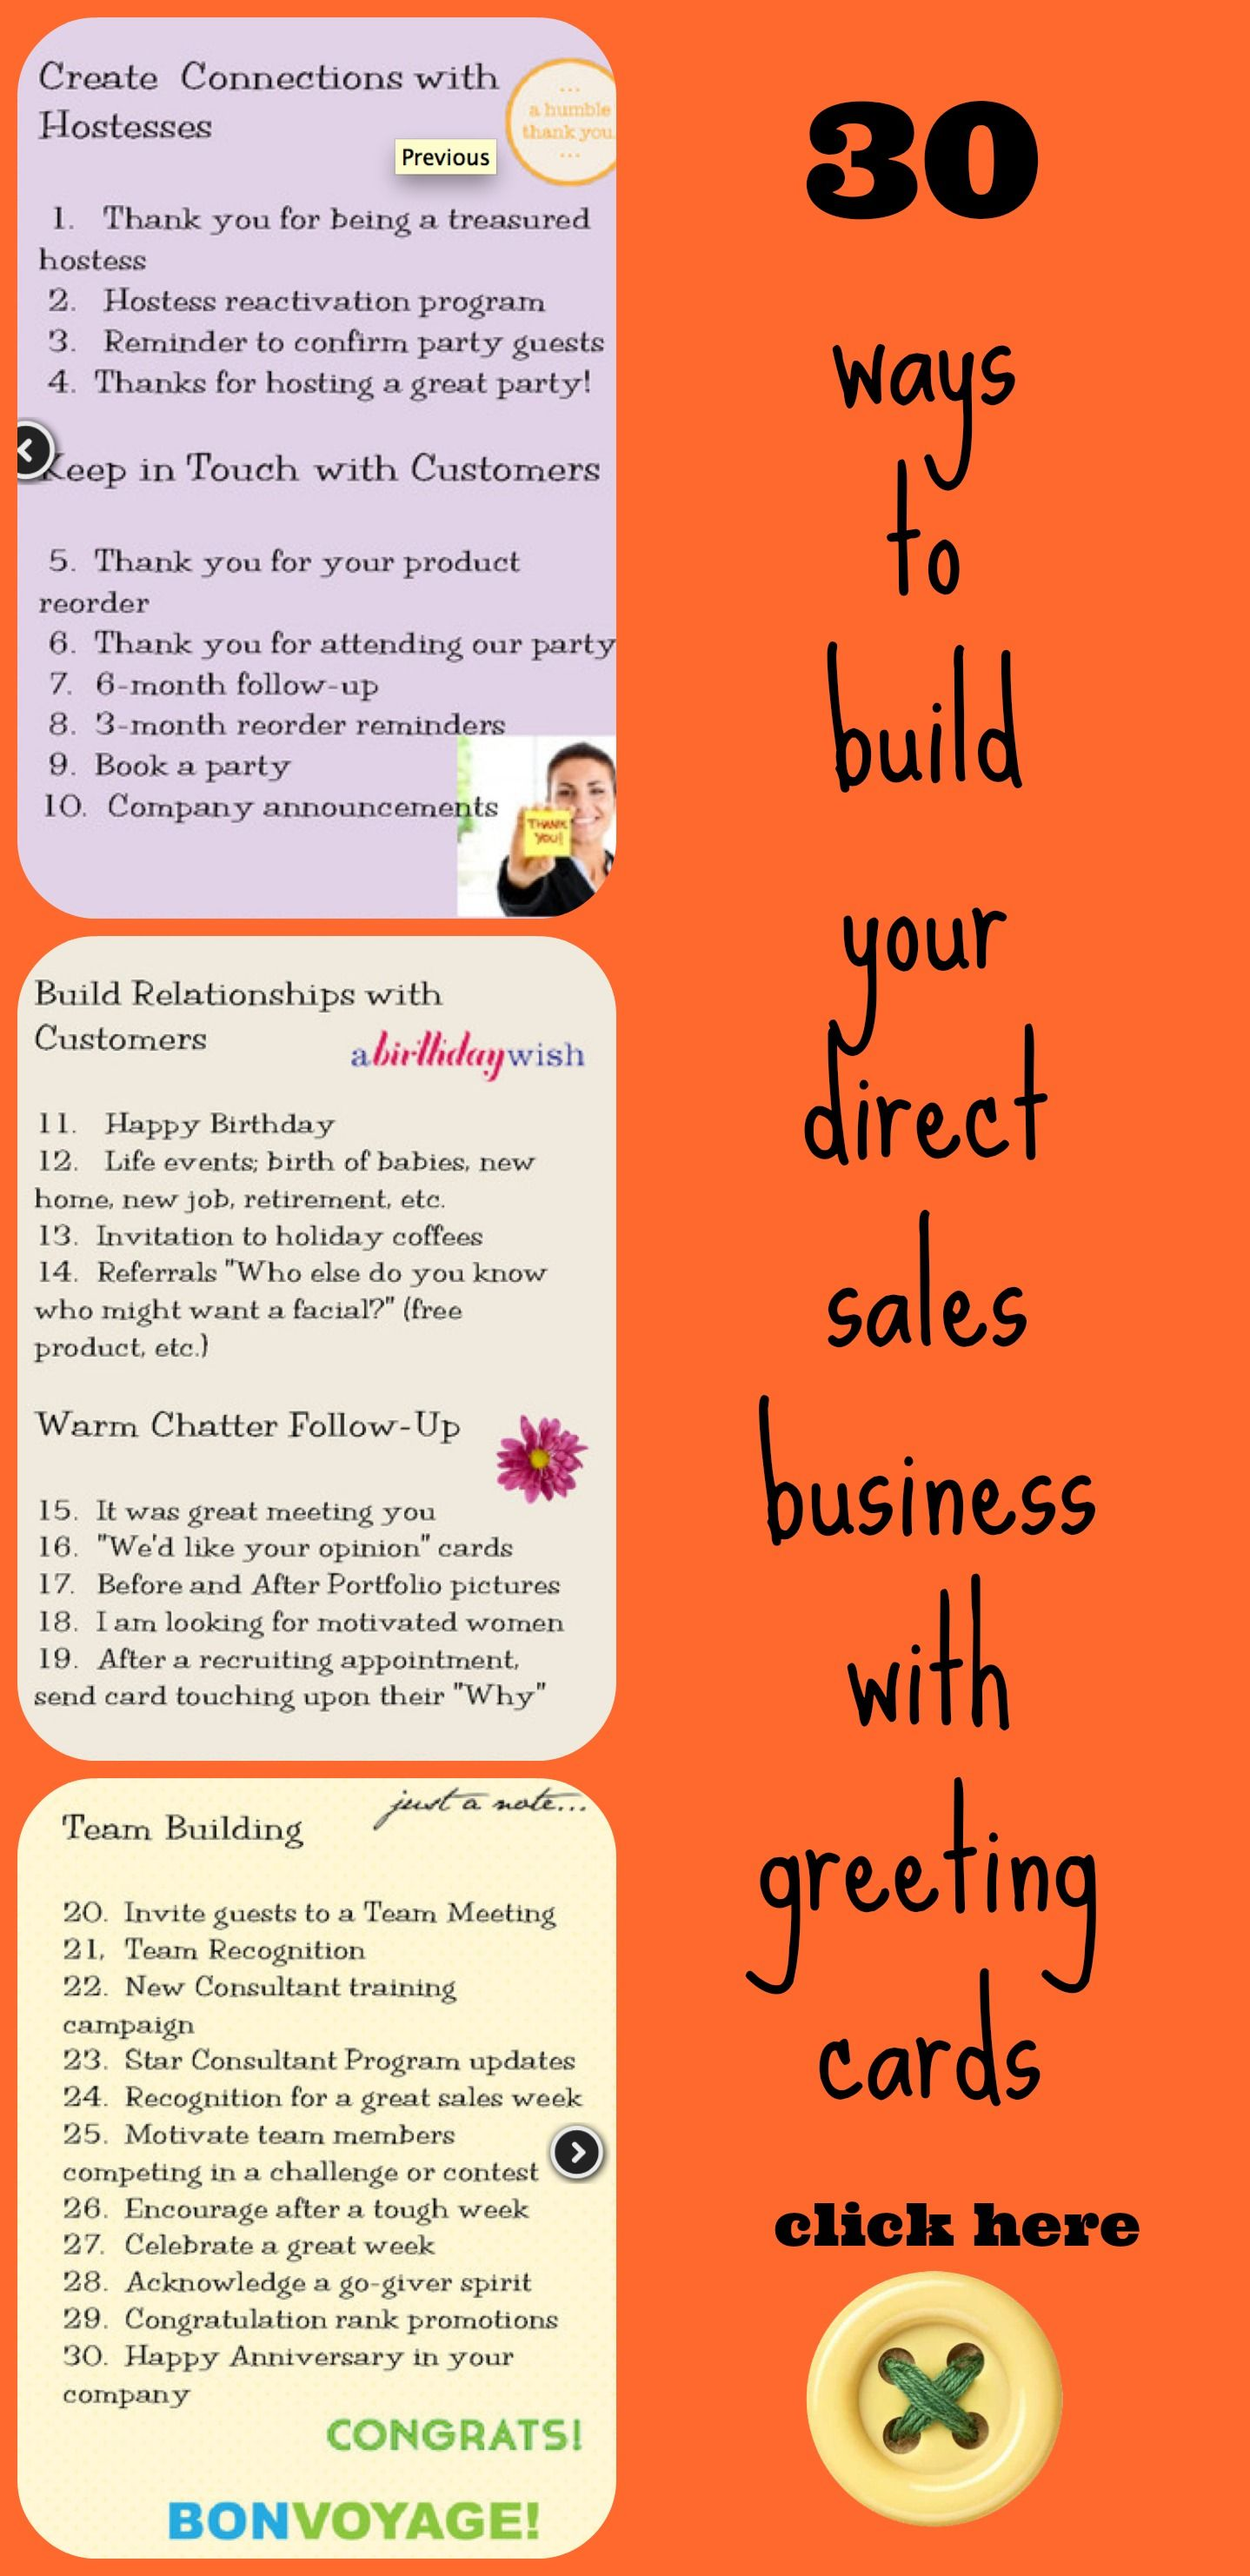 Great ways to use greeting cards to build your direct sales or mlm great ways to use greeting cards to build your direct sales or mlm company http colourmoves